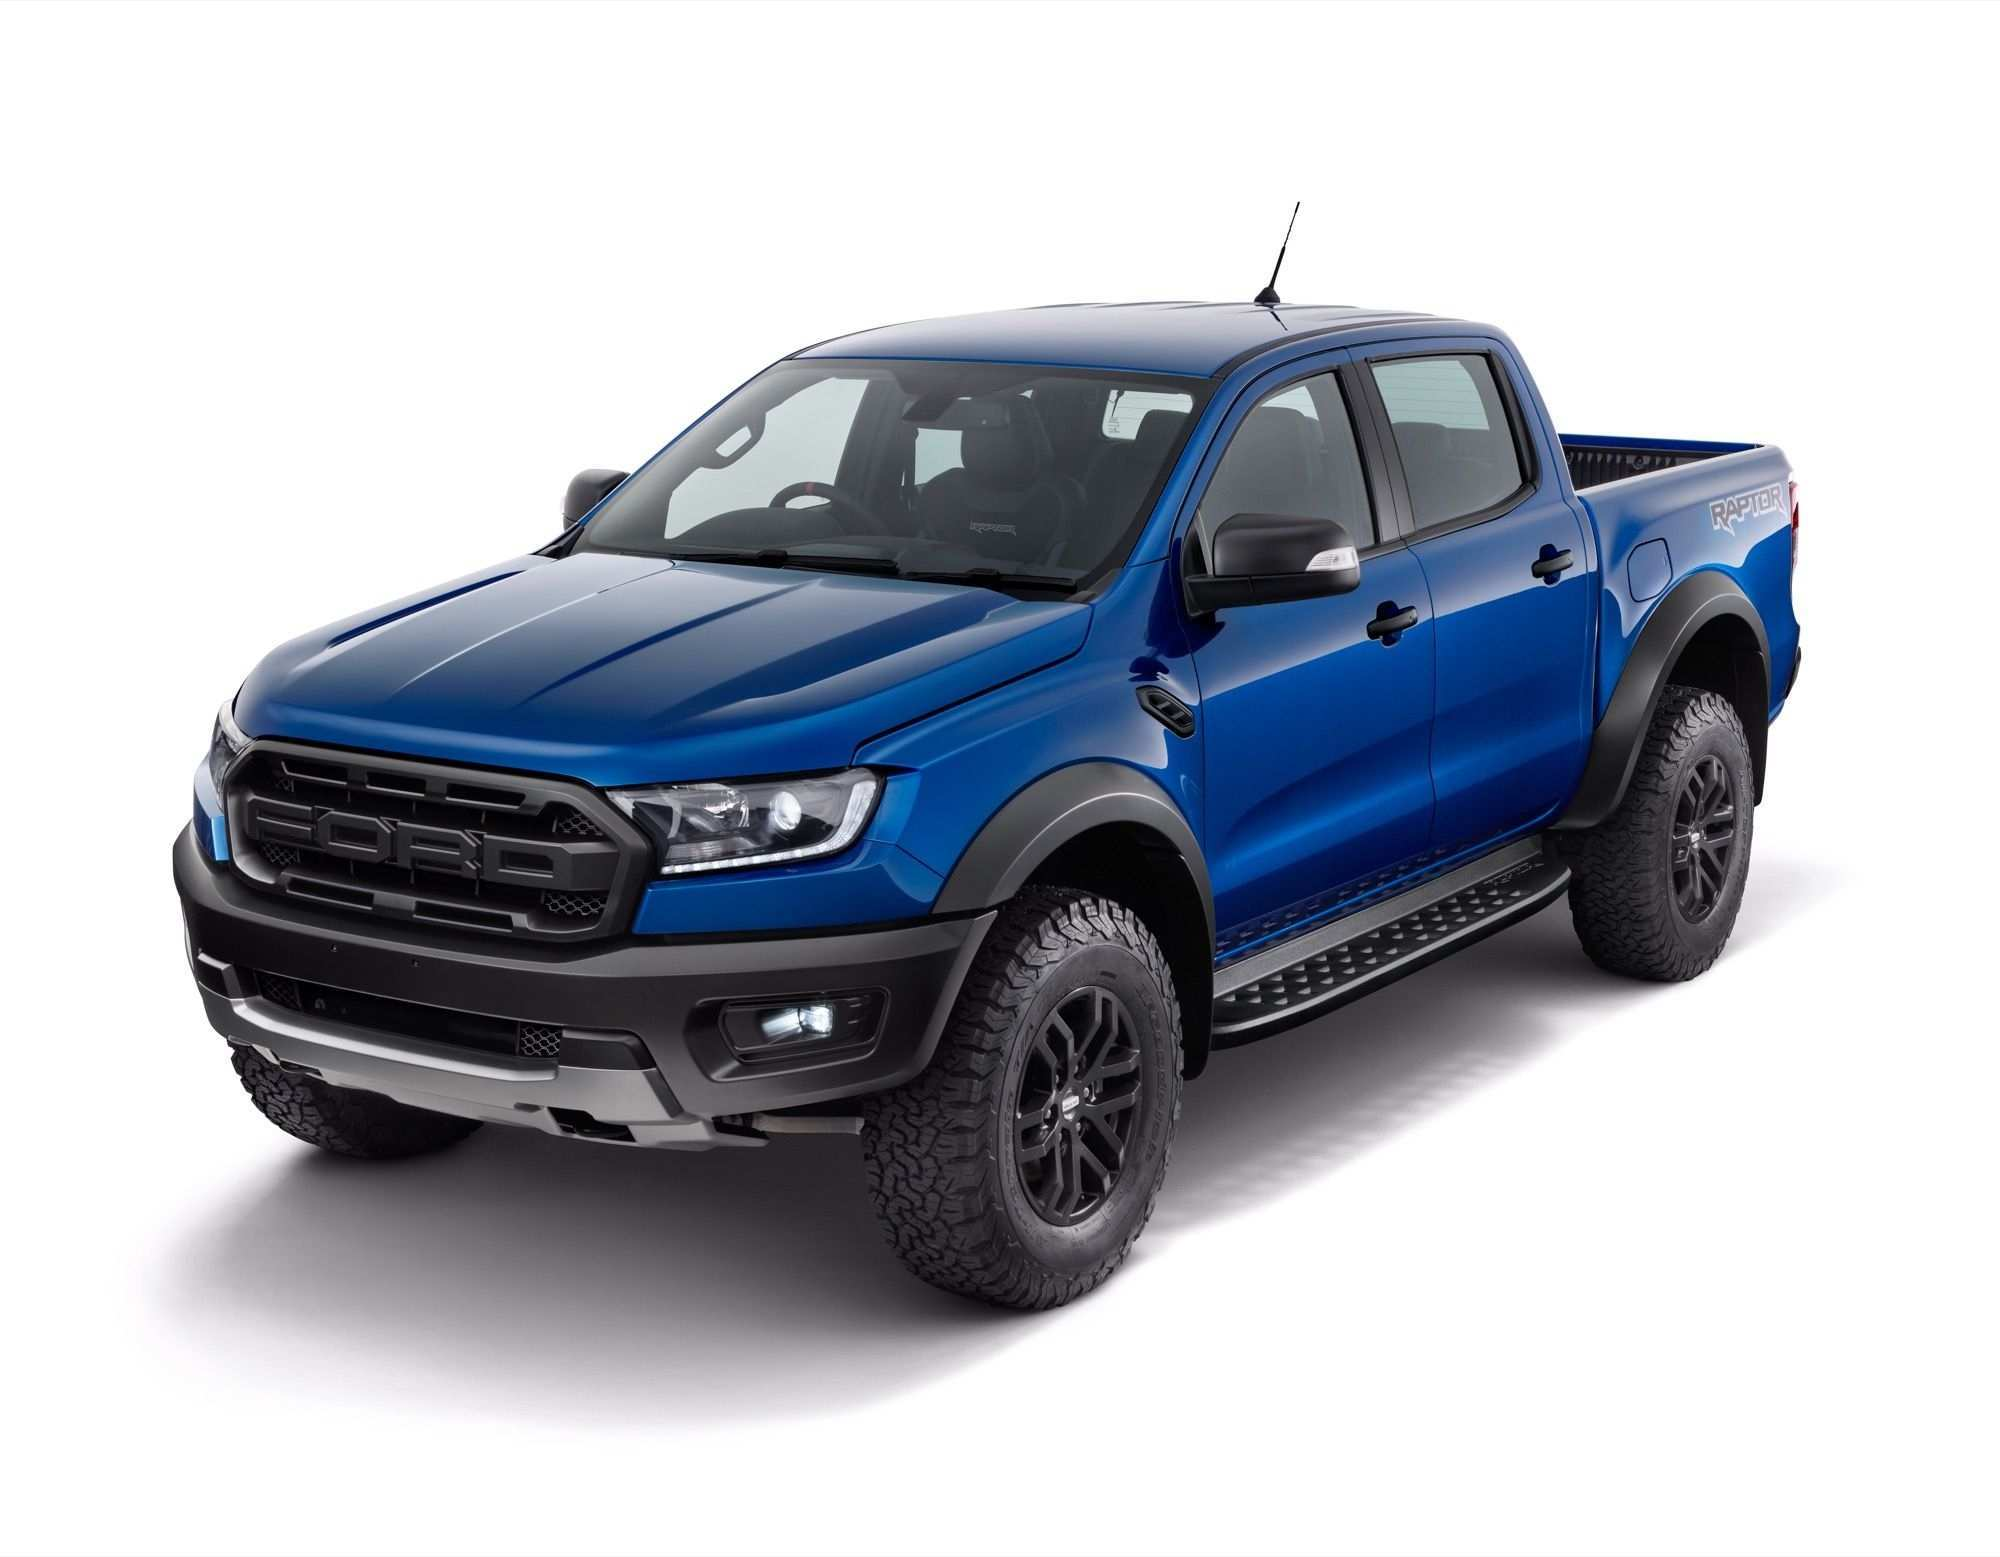 36 The Best Ford Ranger 2019 Canada First Drive Configurations for Best Ford Ranger 2019 Canada First Drive